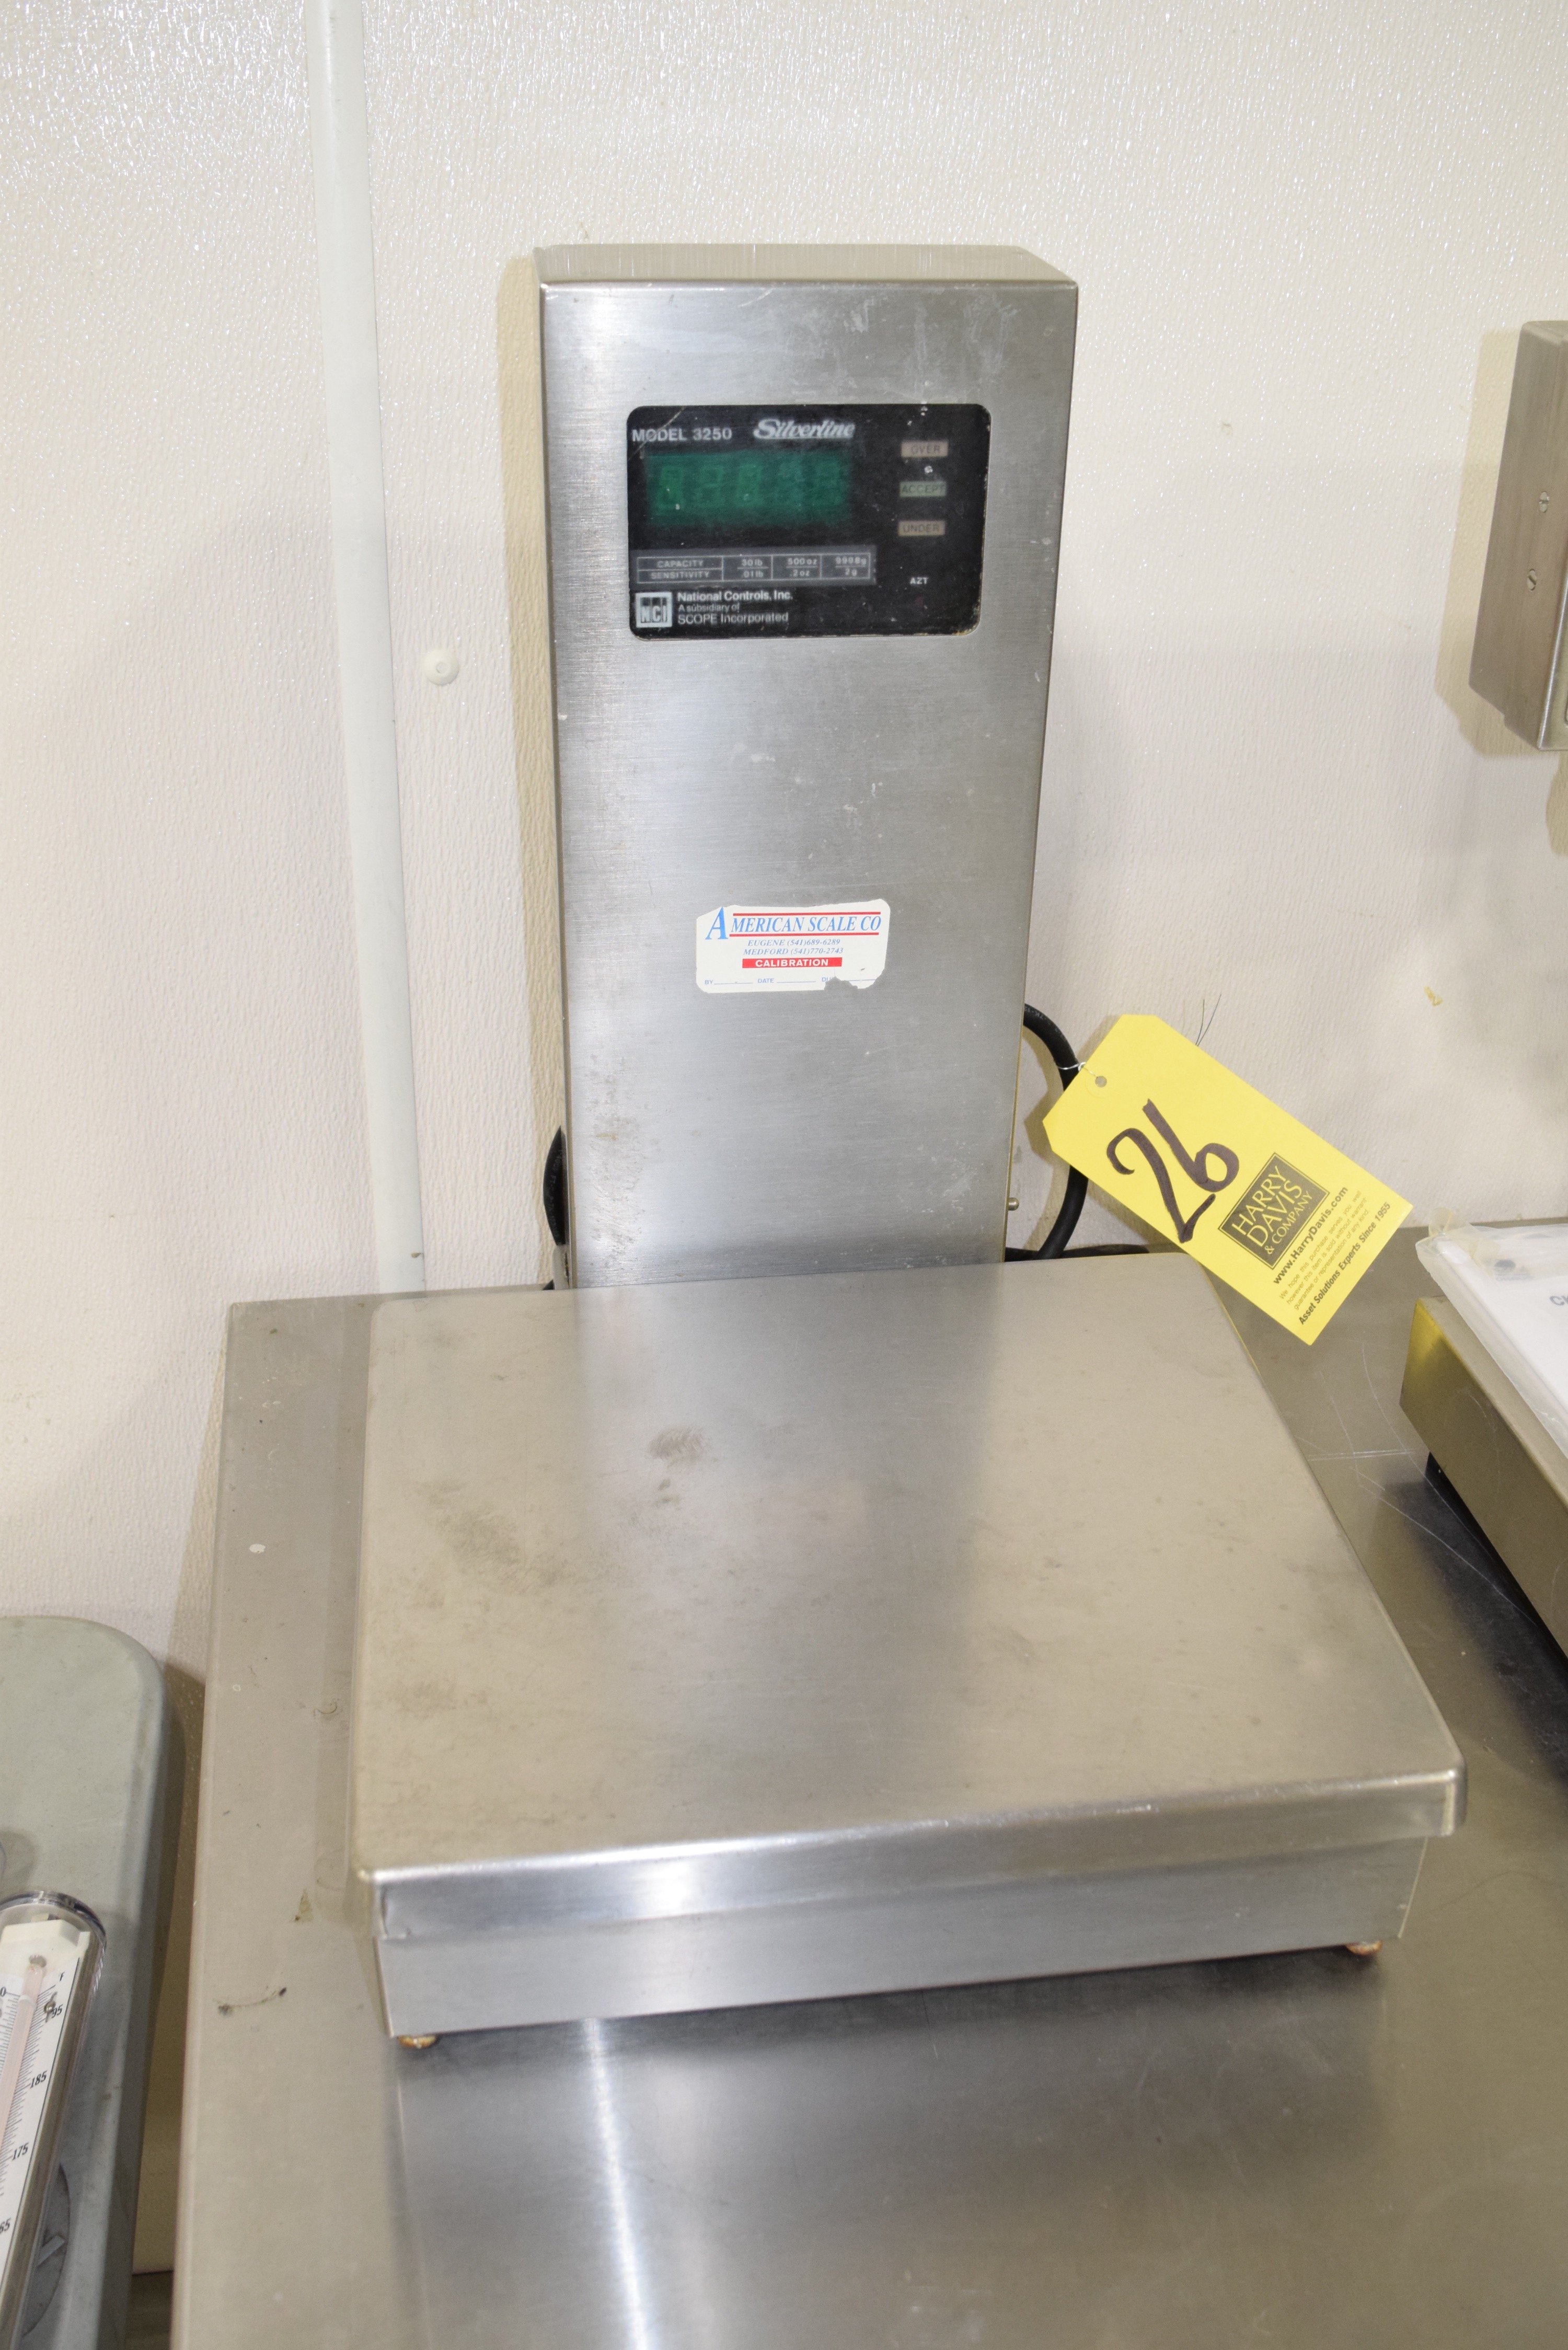 Lot 26 - Silverline, 30 LB Capacity S/S Digital Scale, Model: 3250 **Rigging Fee $40